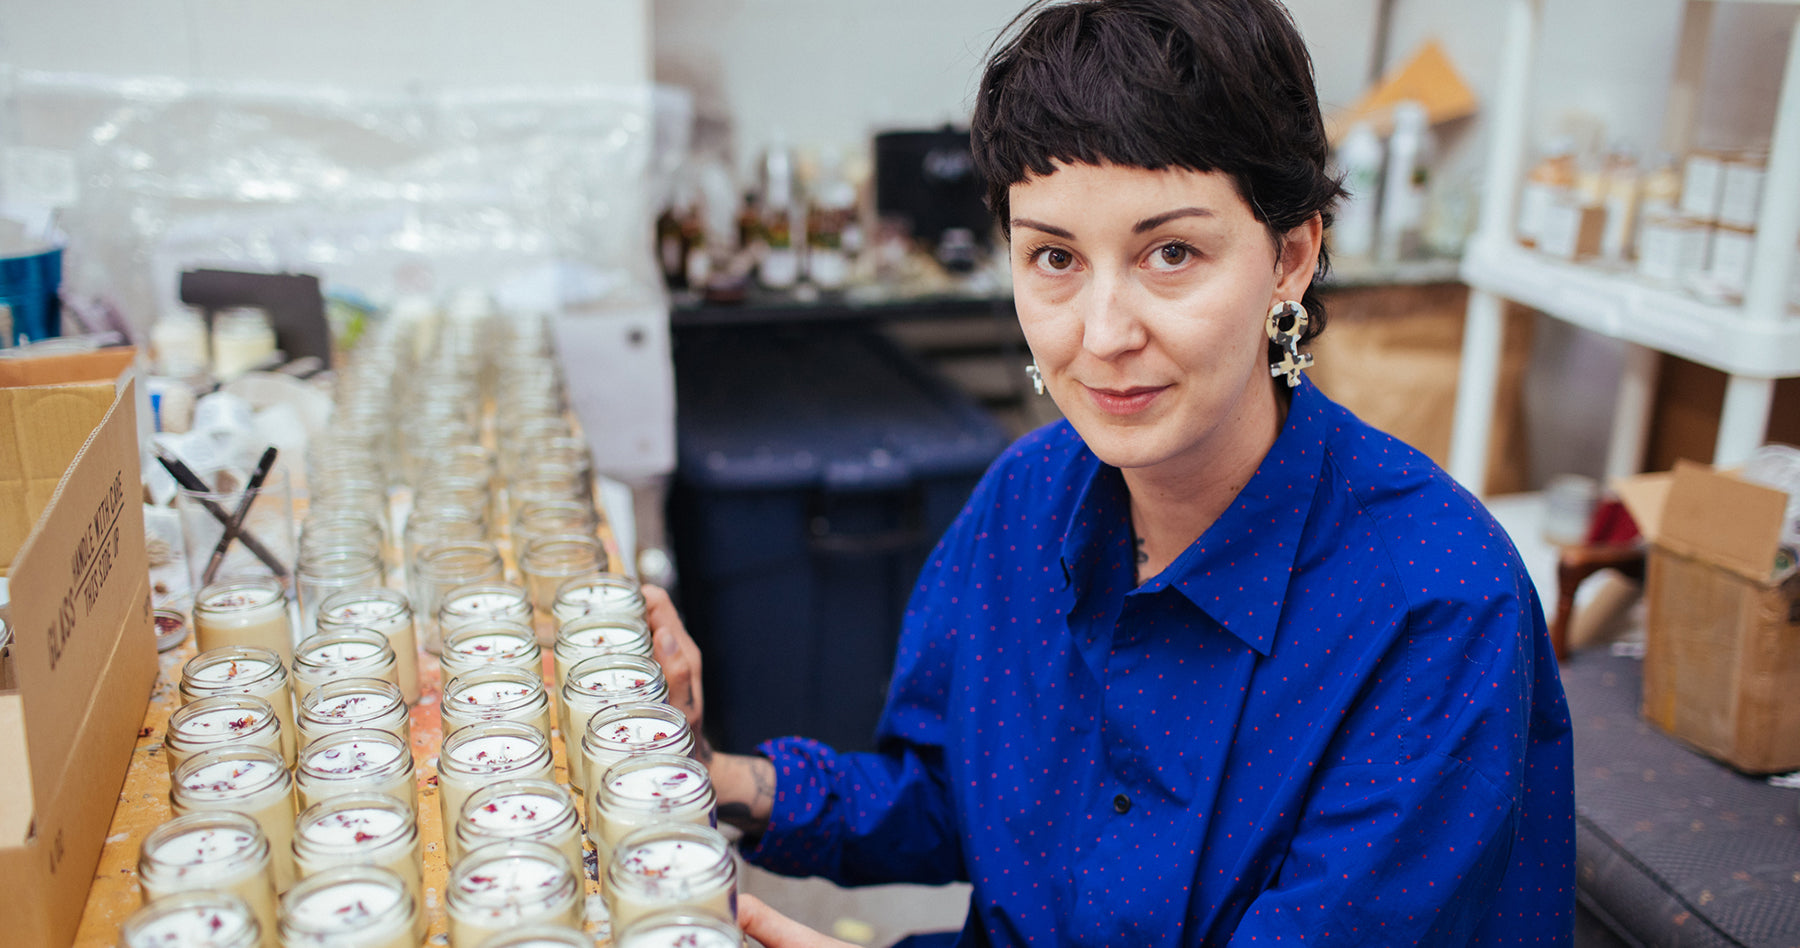 Kerry Butt, Founder and Candle Maker, RedSky Shop